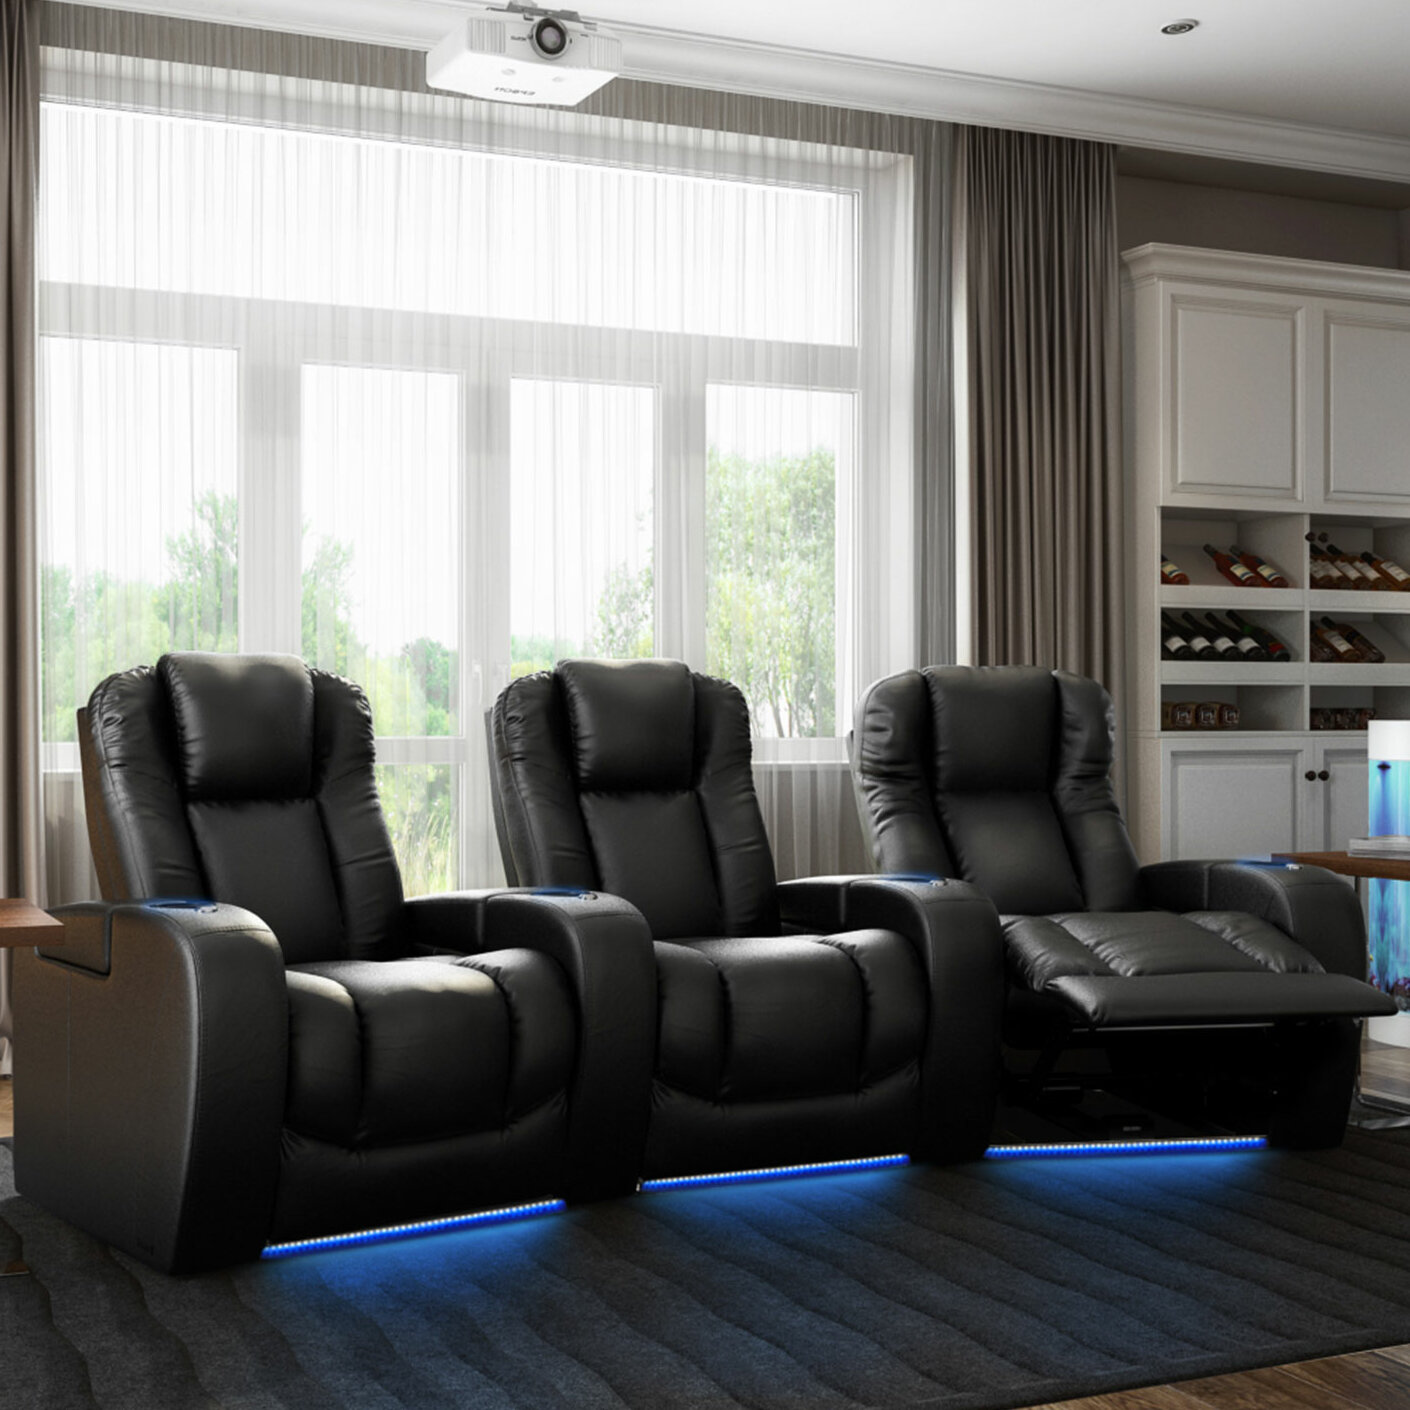 Groovy Grand Hr Series Curved Home Theater Row Seating Row Of 3 Spiritservingveterans Wood Chair Design Ideas Spiritservingveteransorg